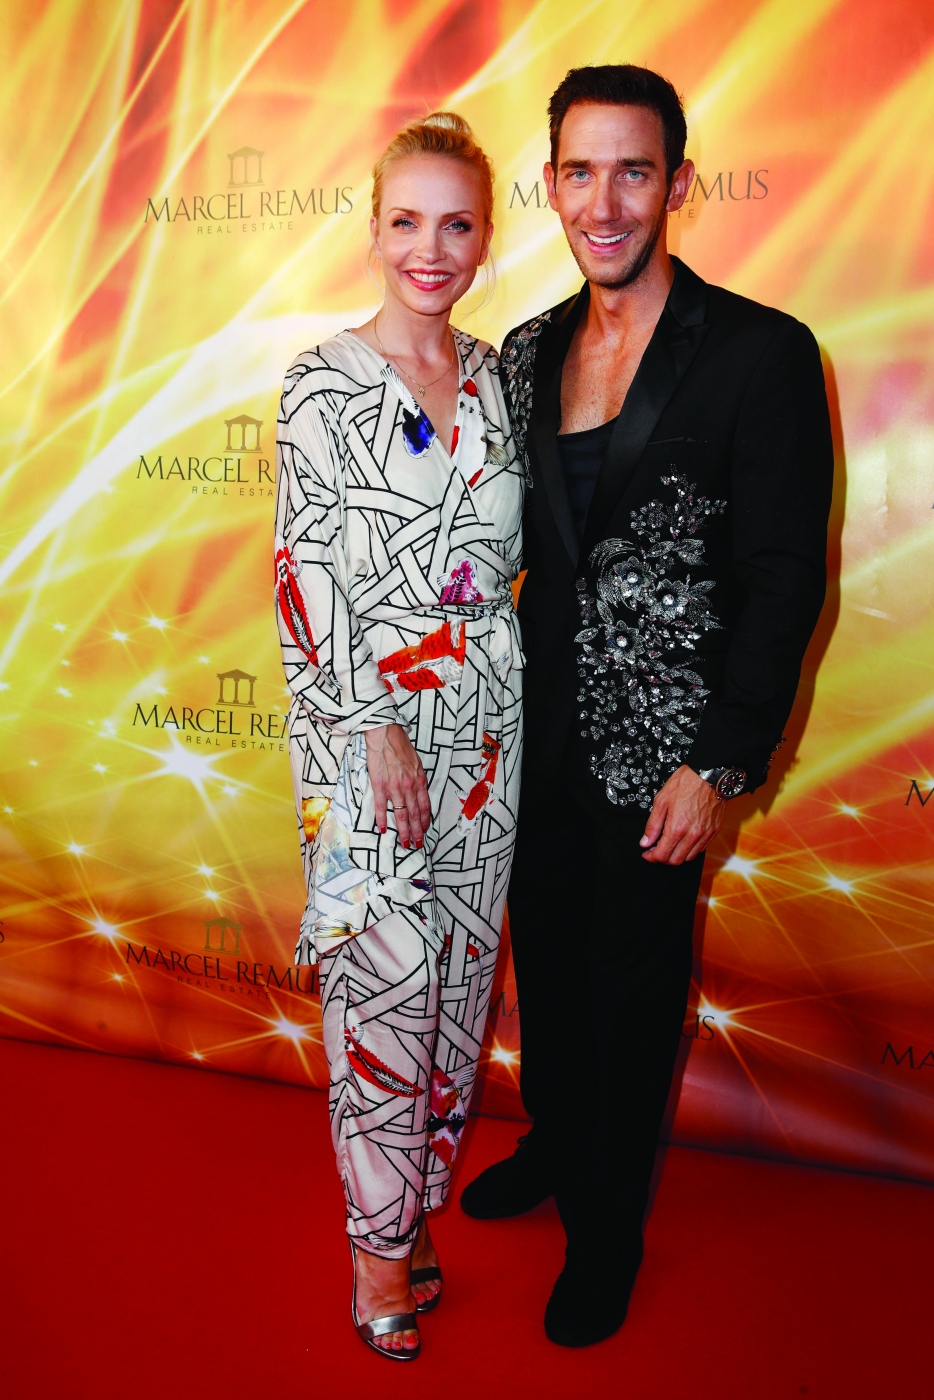 [ Evénement ] Janin Ullmann and Marcel Remus attend the Remus Lifestyle Night